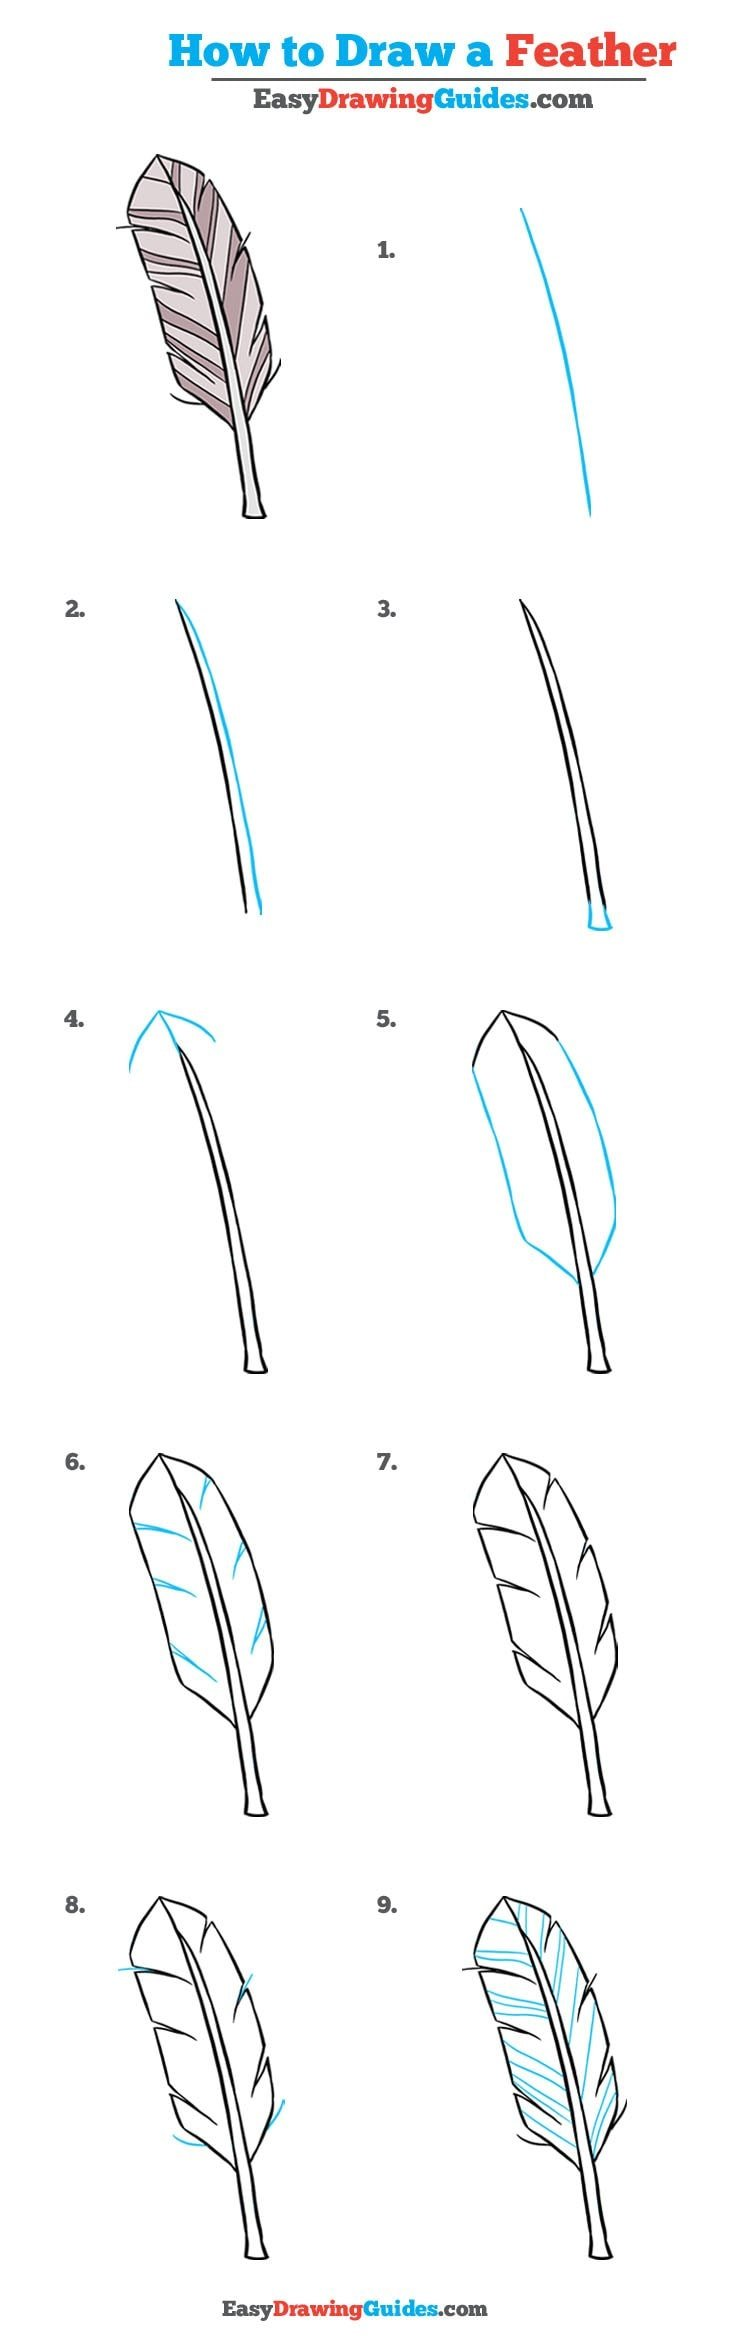 How to Draw Feather